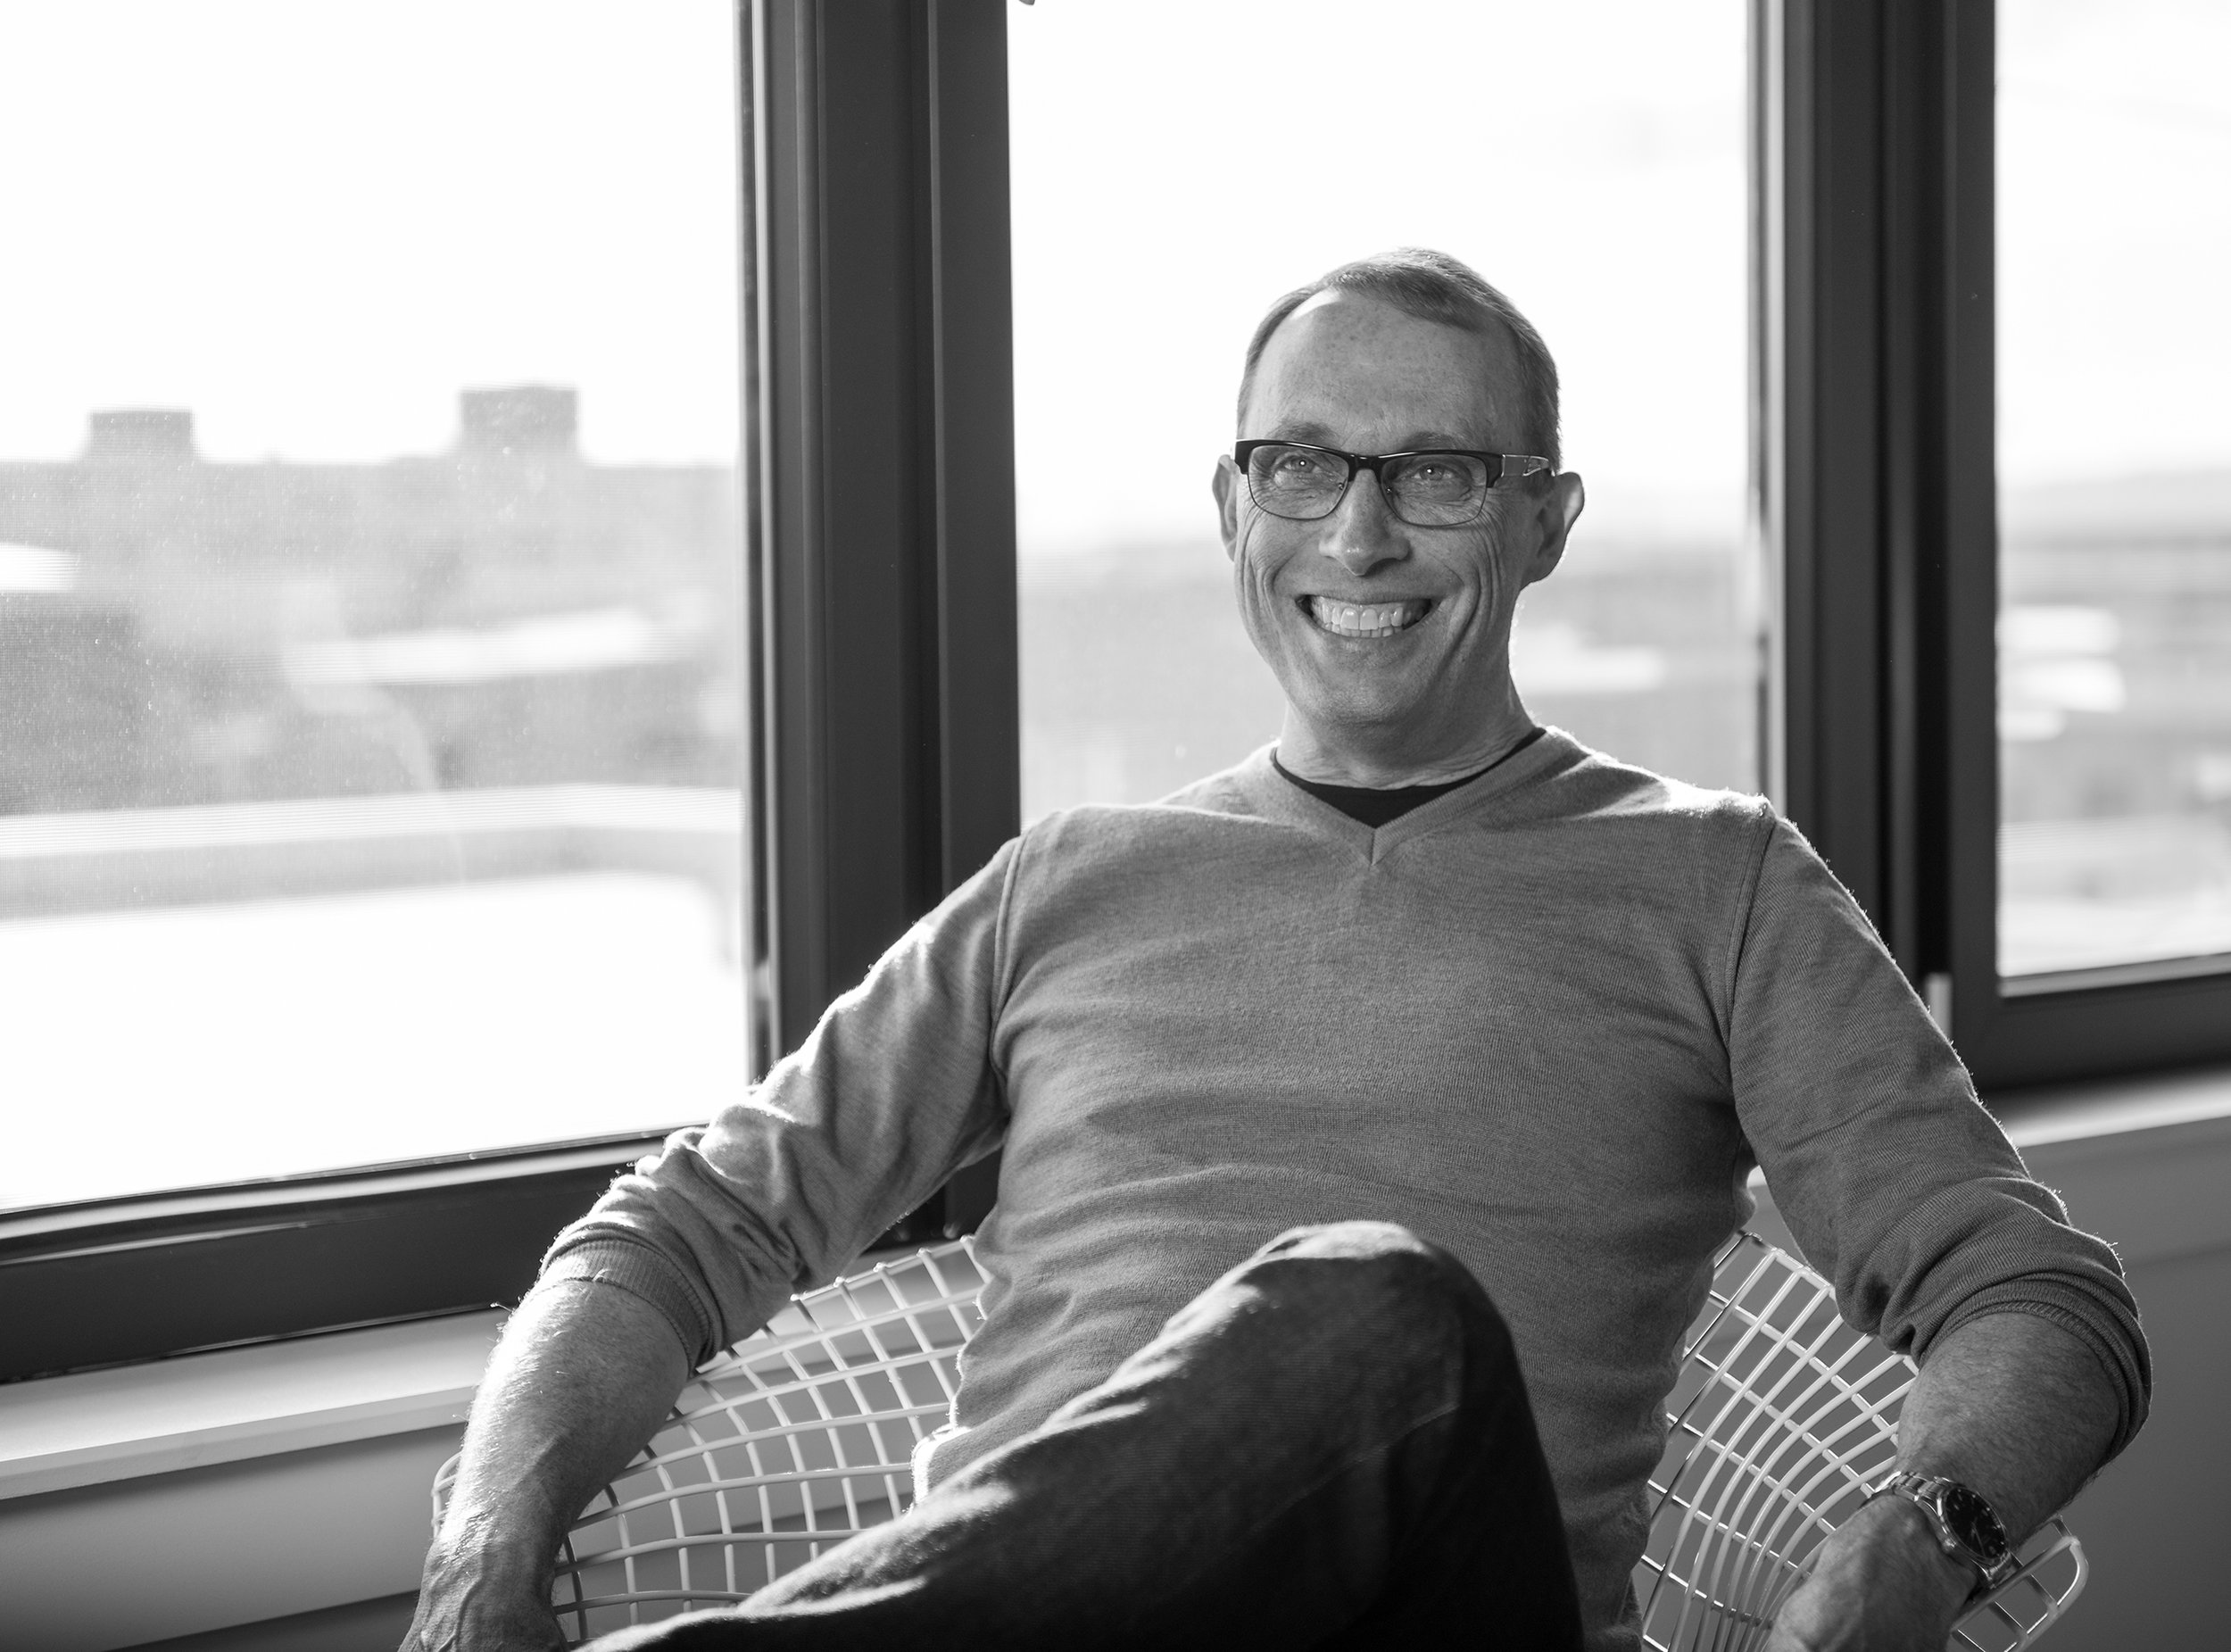 Bremerton architect Steve Rice is Senior Principal at  Rice Fergus Miller , a certified B Corporation known for its expertise in shaping community and being on the cutting edge of innovation and sustainability.